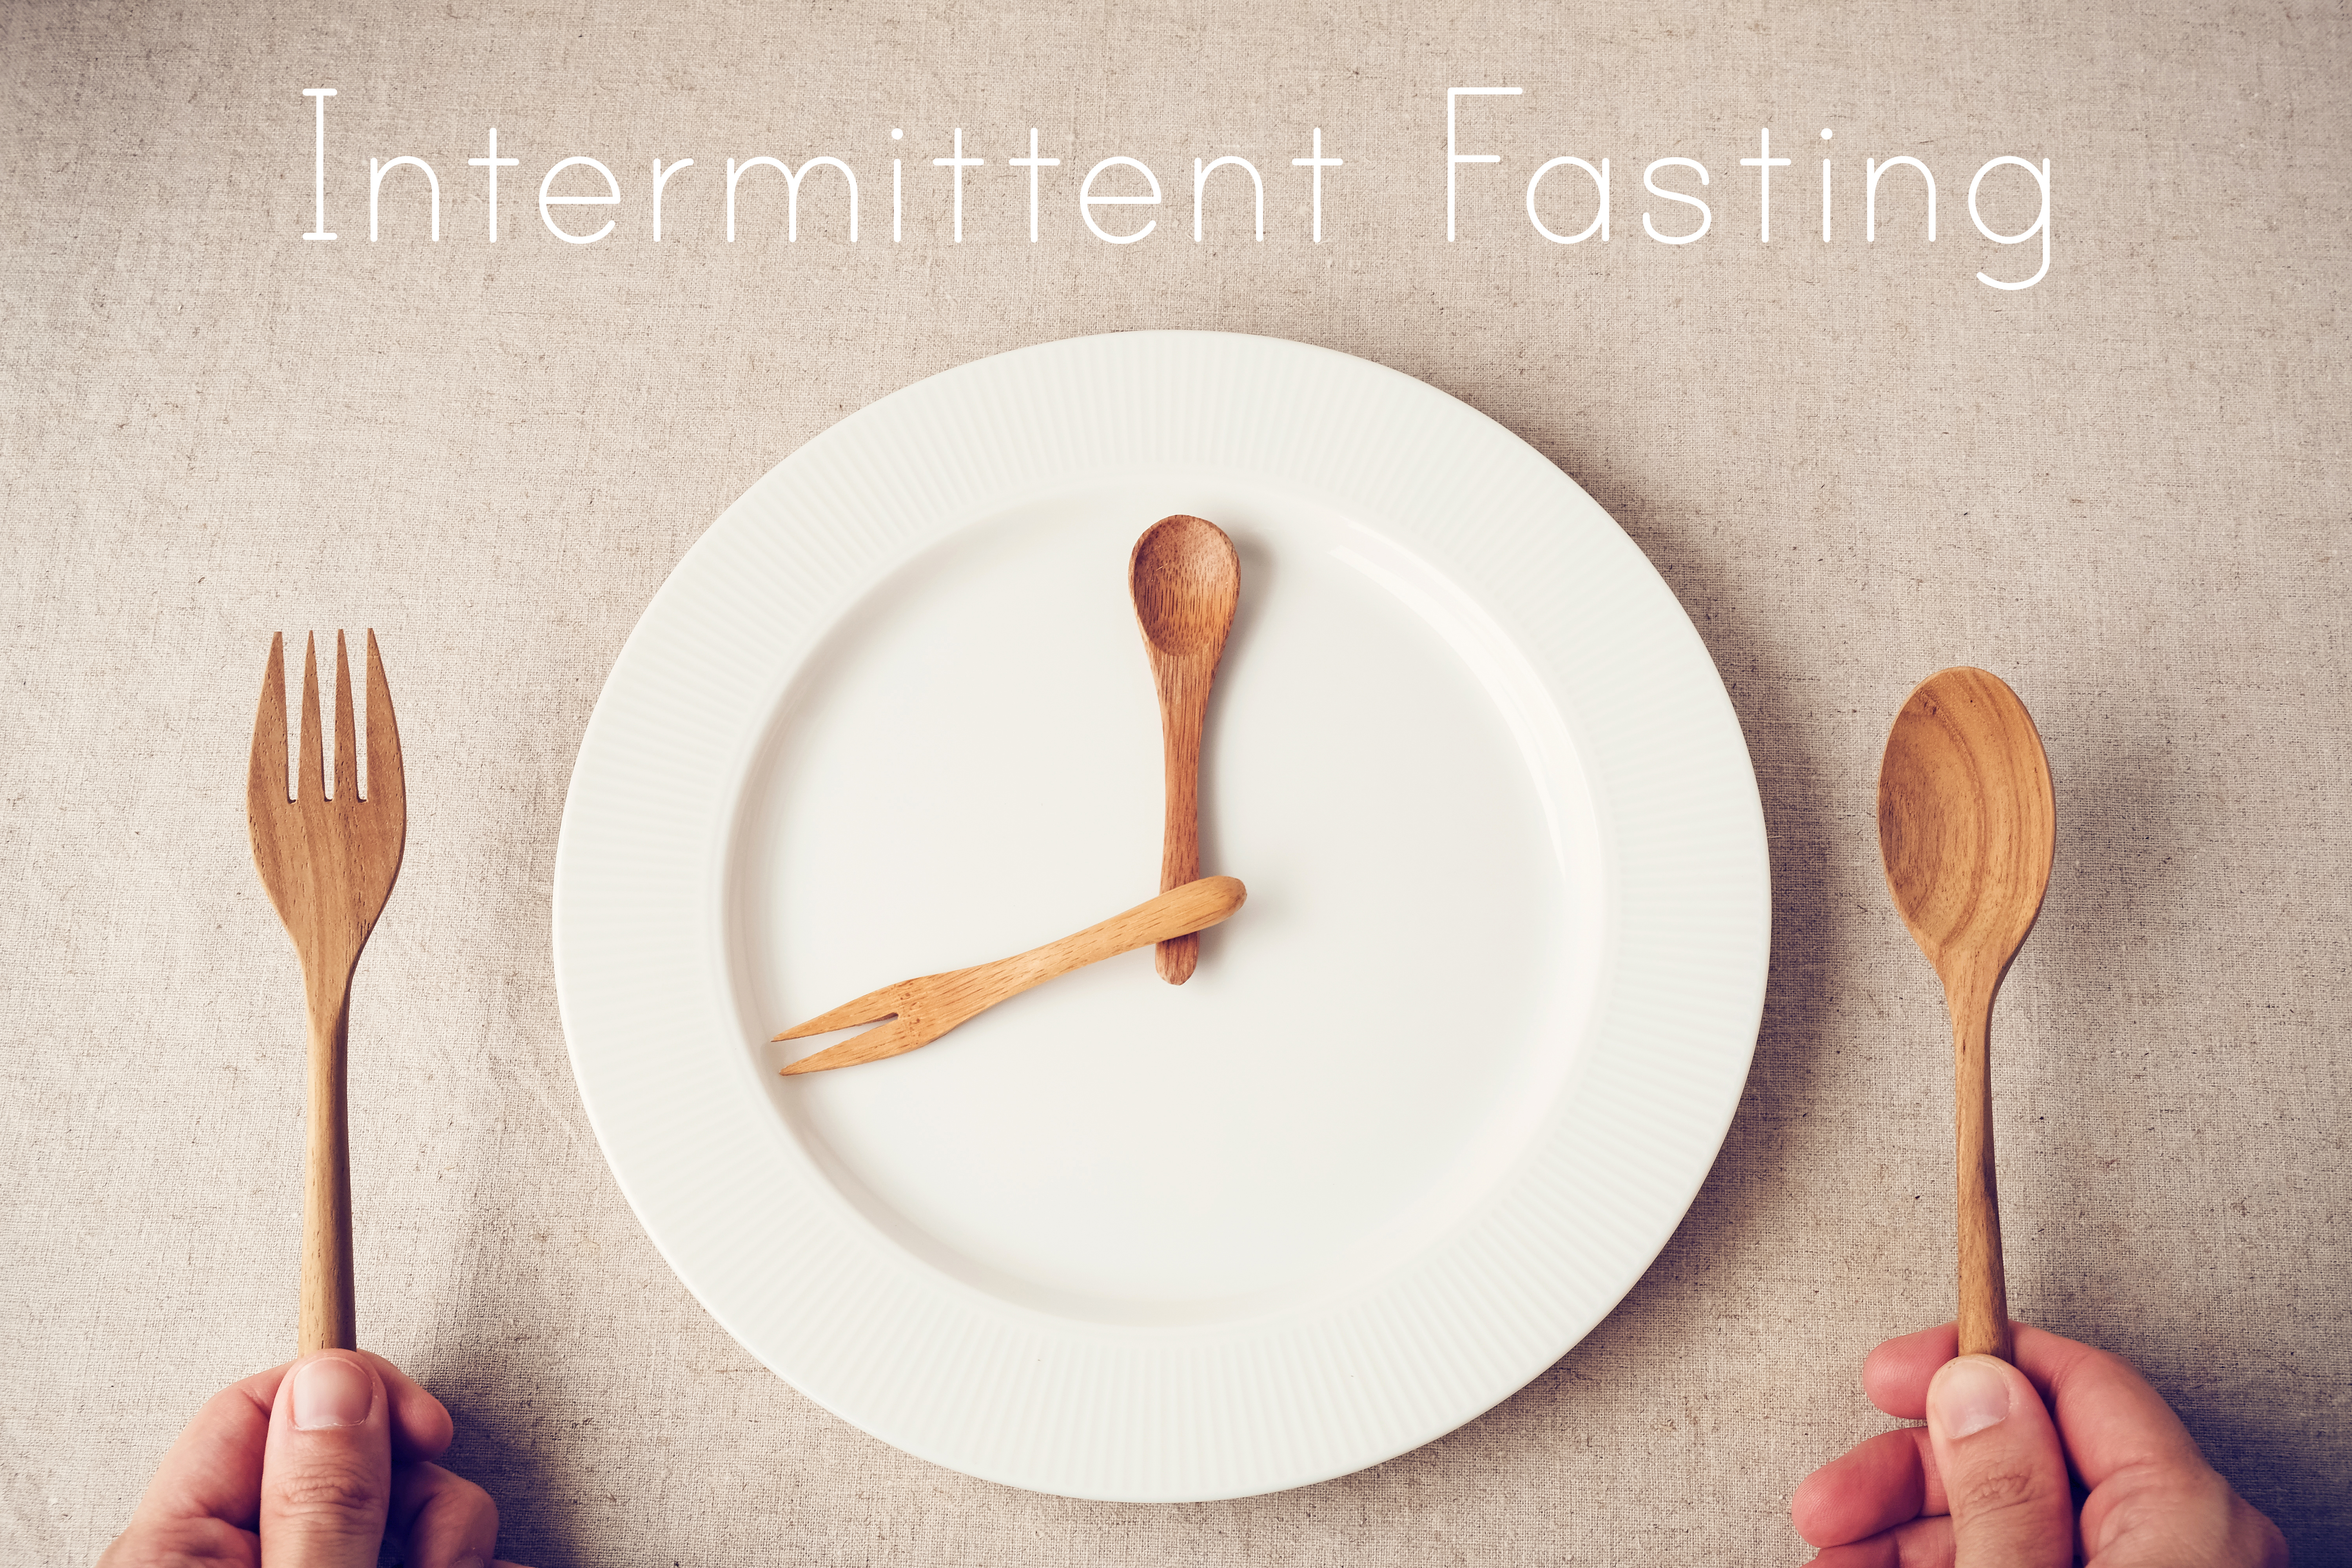 Intermittent fasting diet for athletes